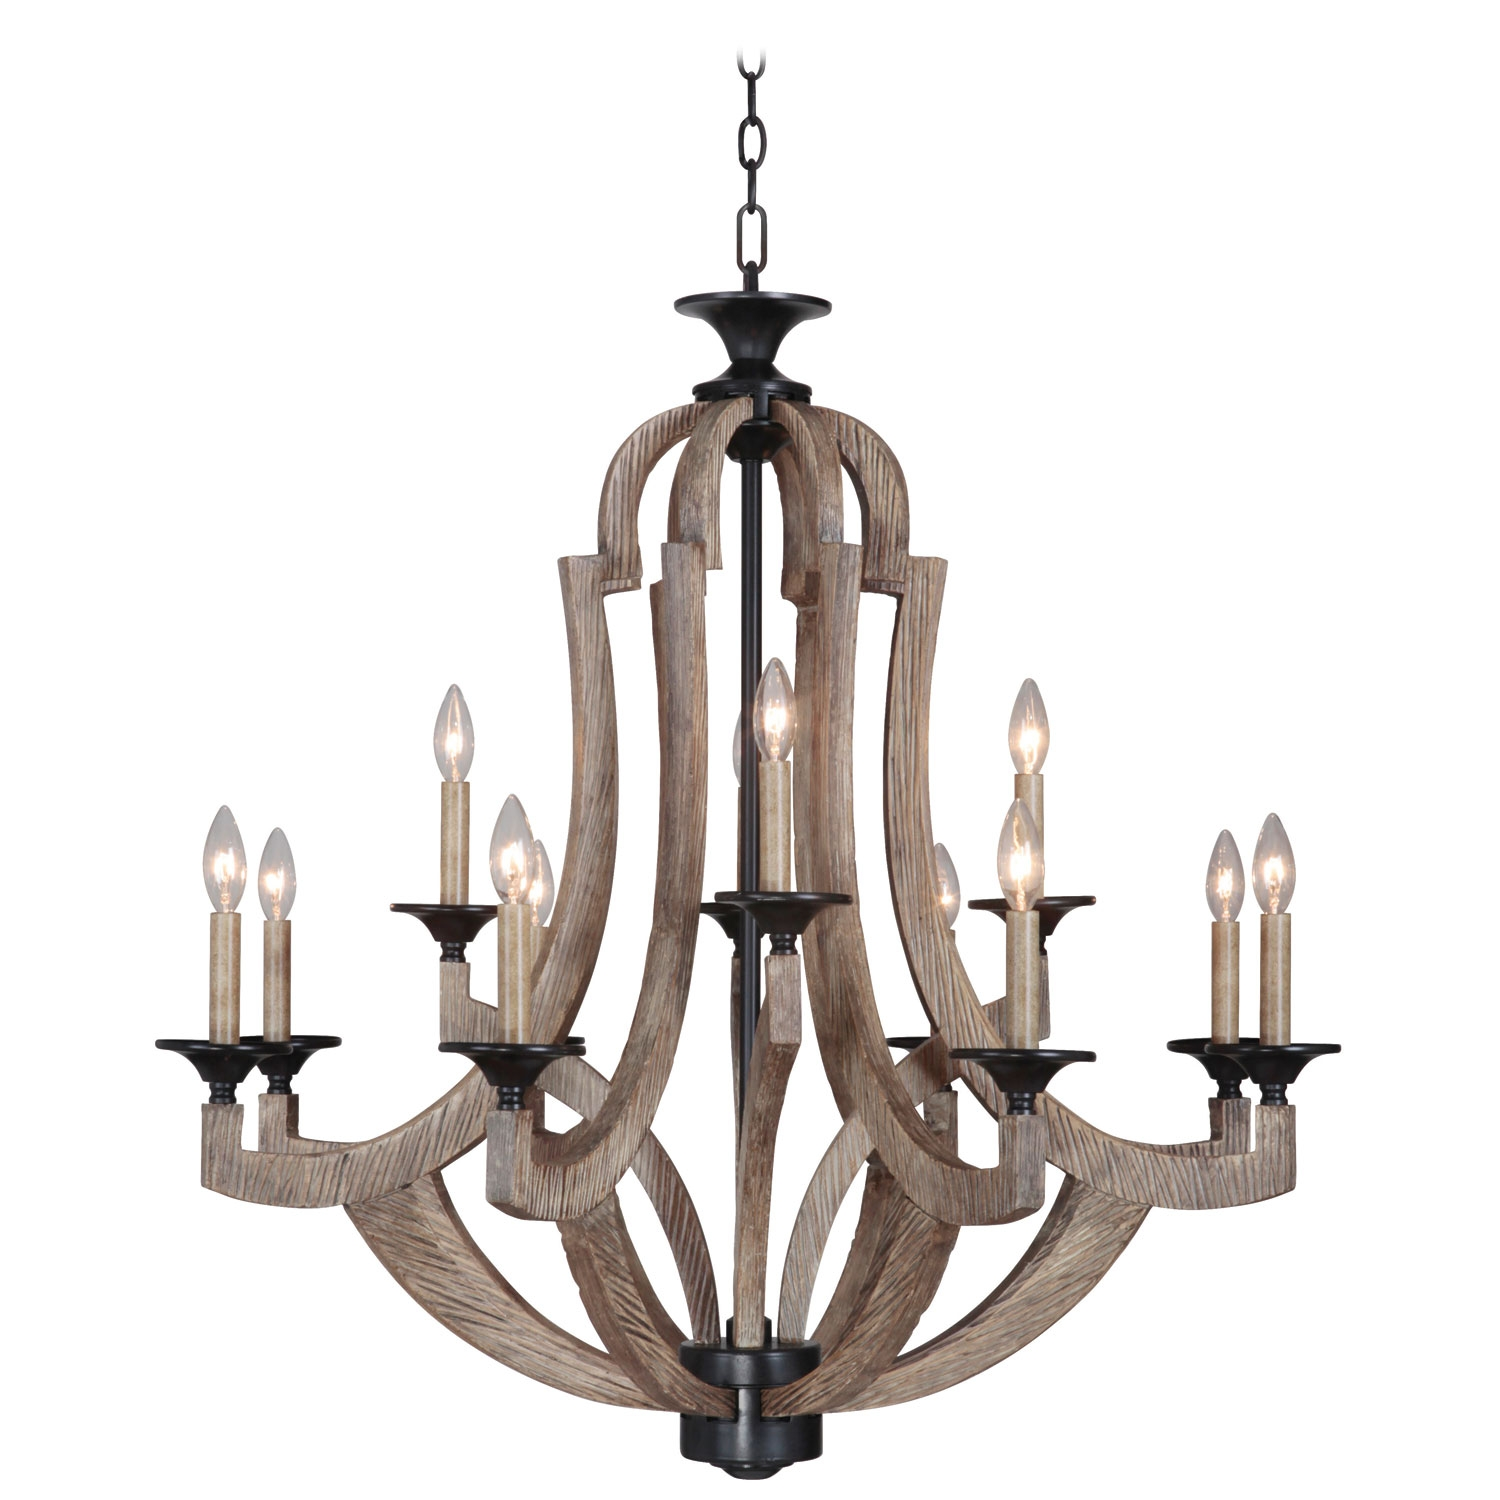 Chandeliers Crystal Modern Iron Shab Chic Country French Pertaining To Small Bronze Chandelier (View 14 of 15)